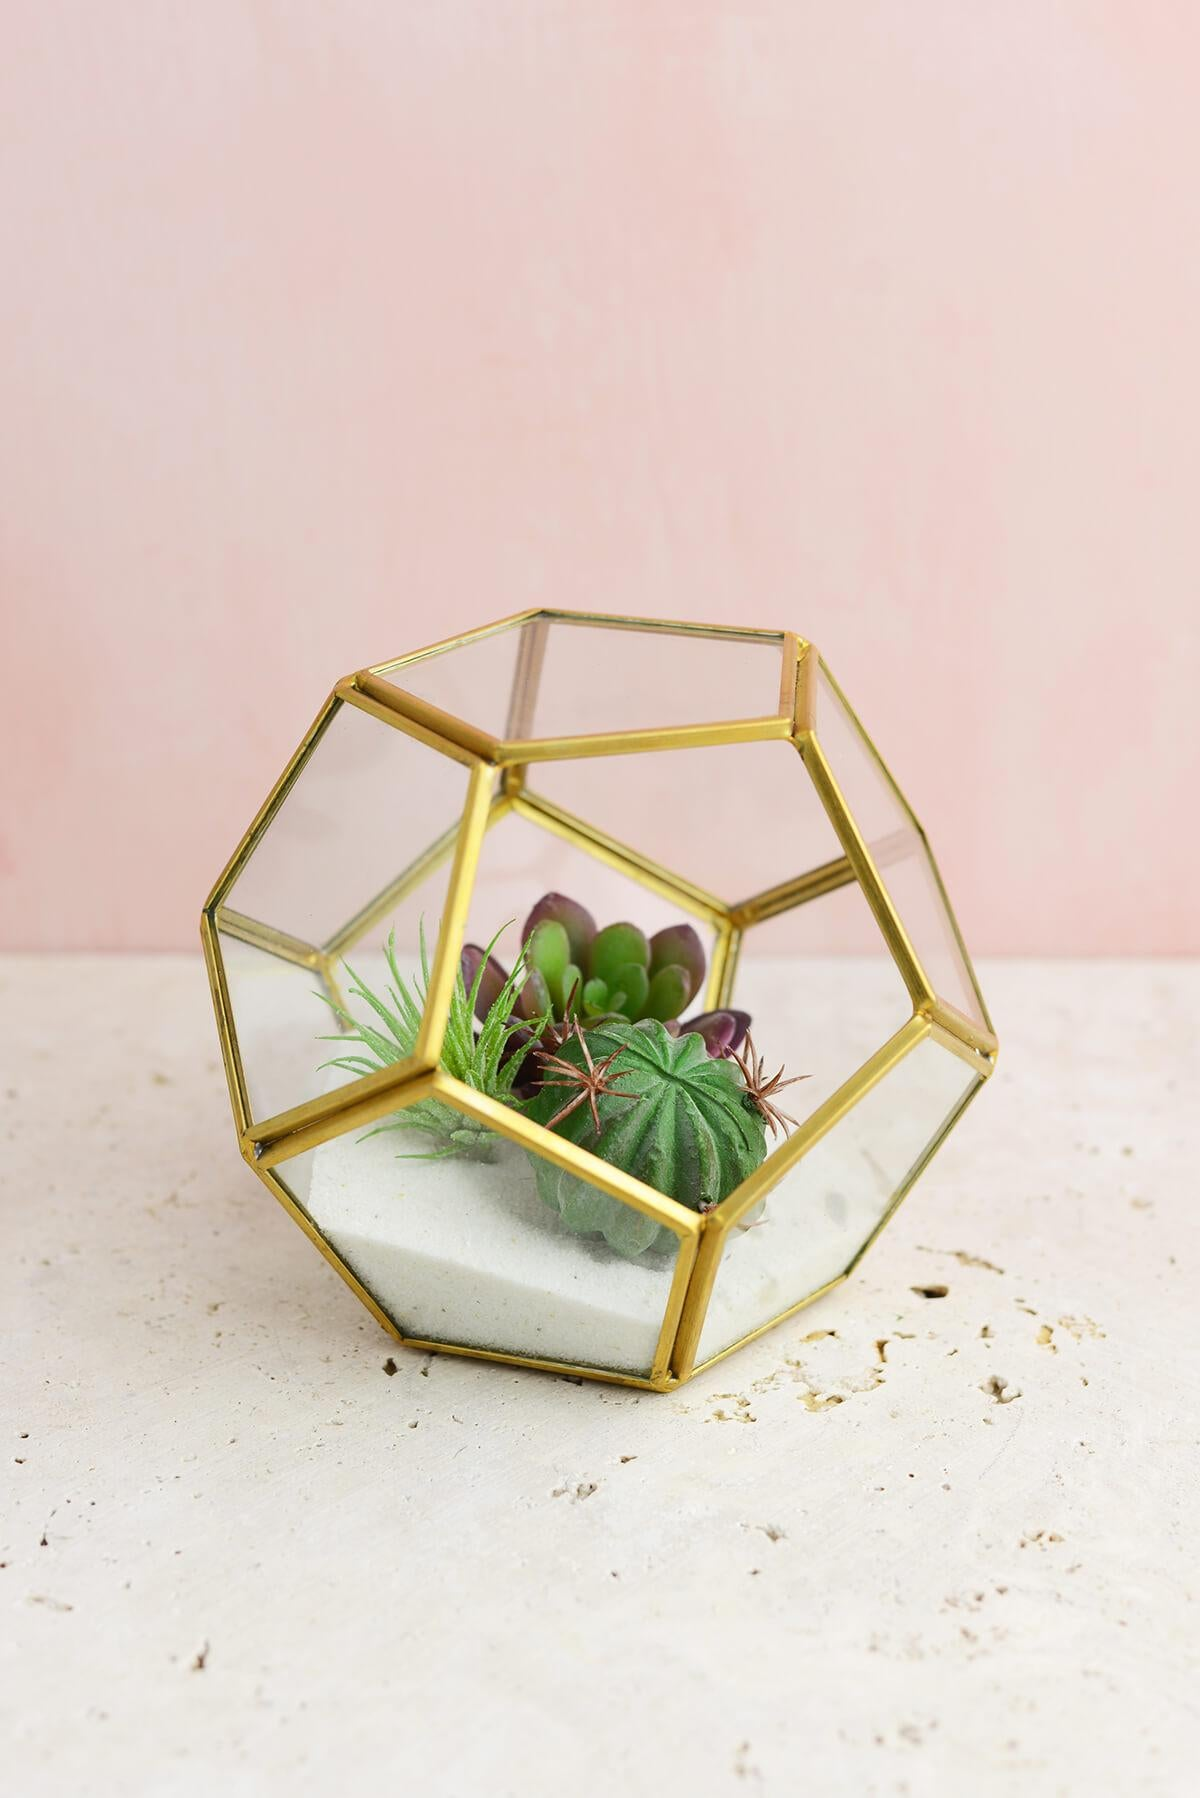 hira glass terrarium display box 5 5 x 5 5